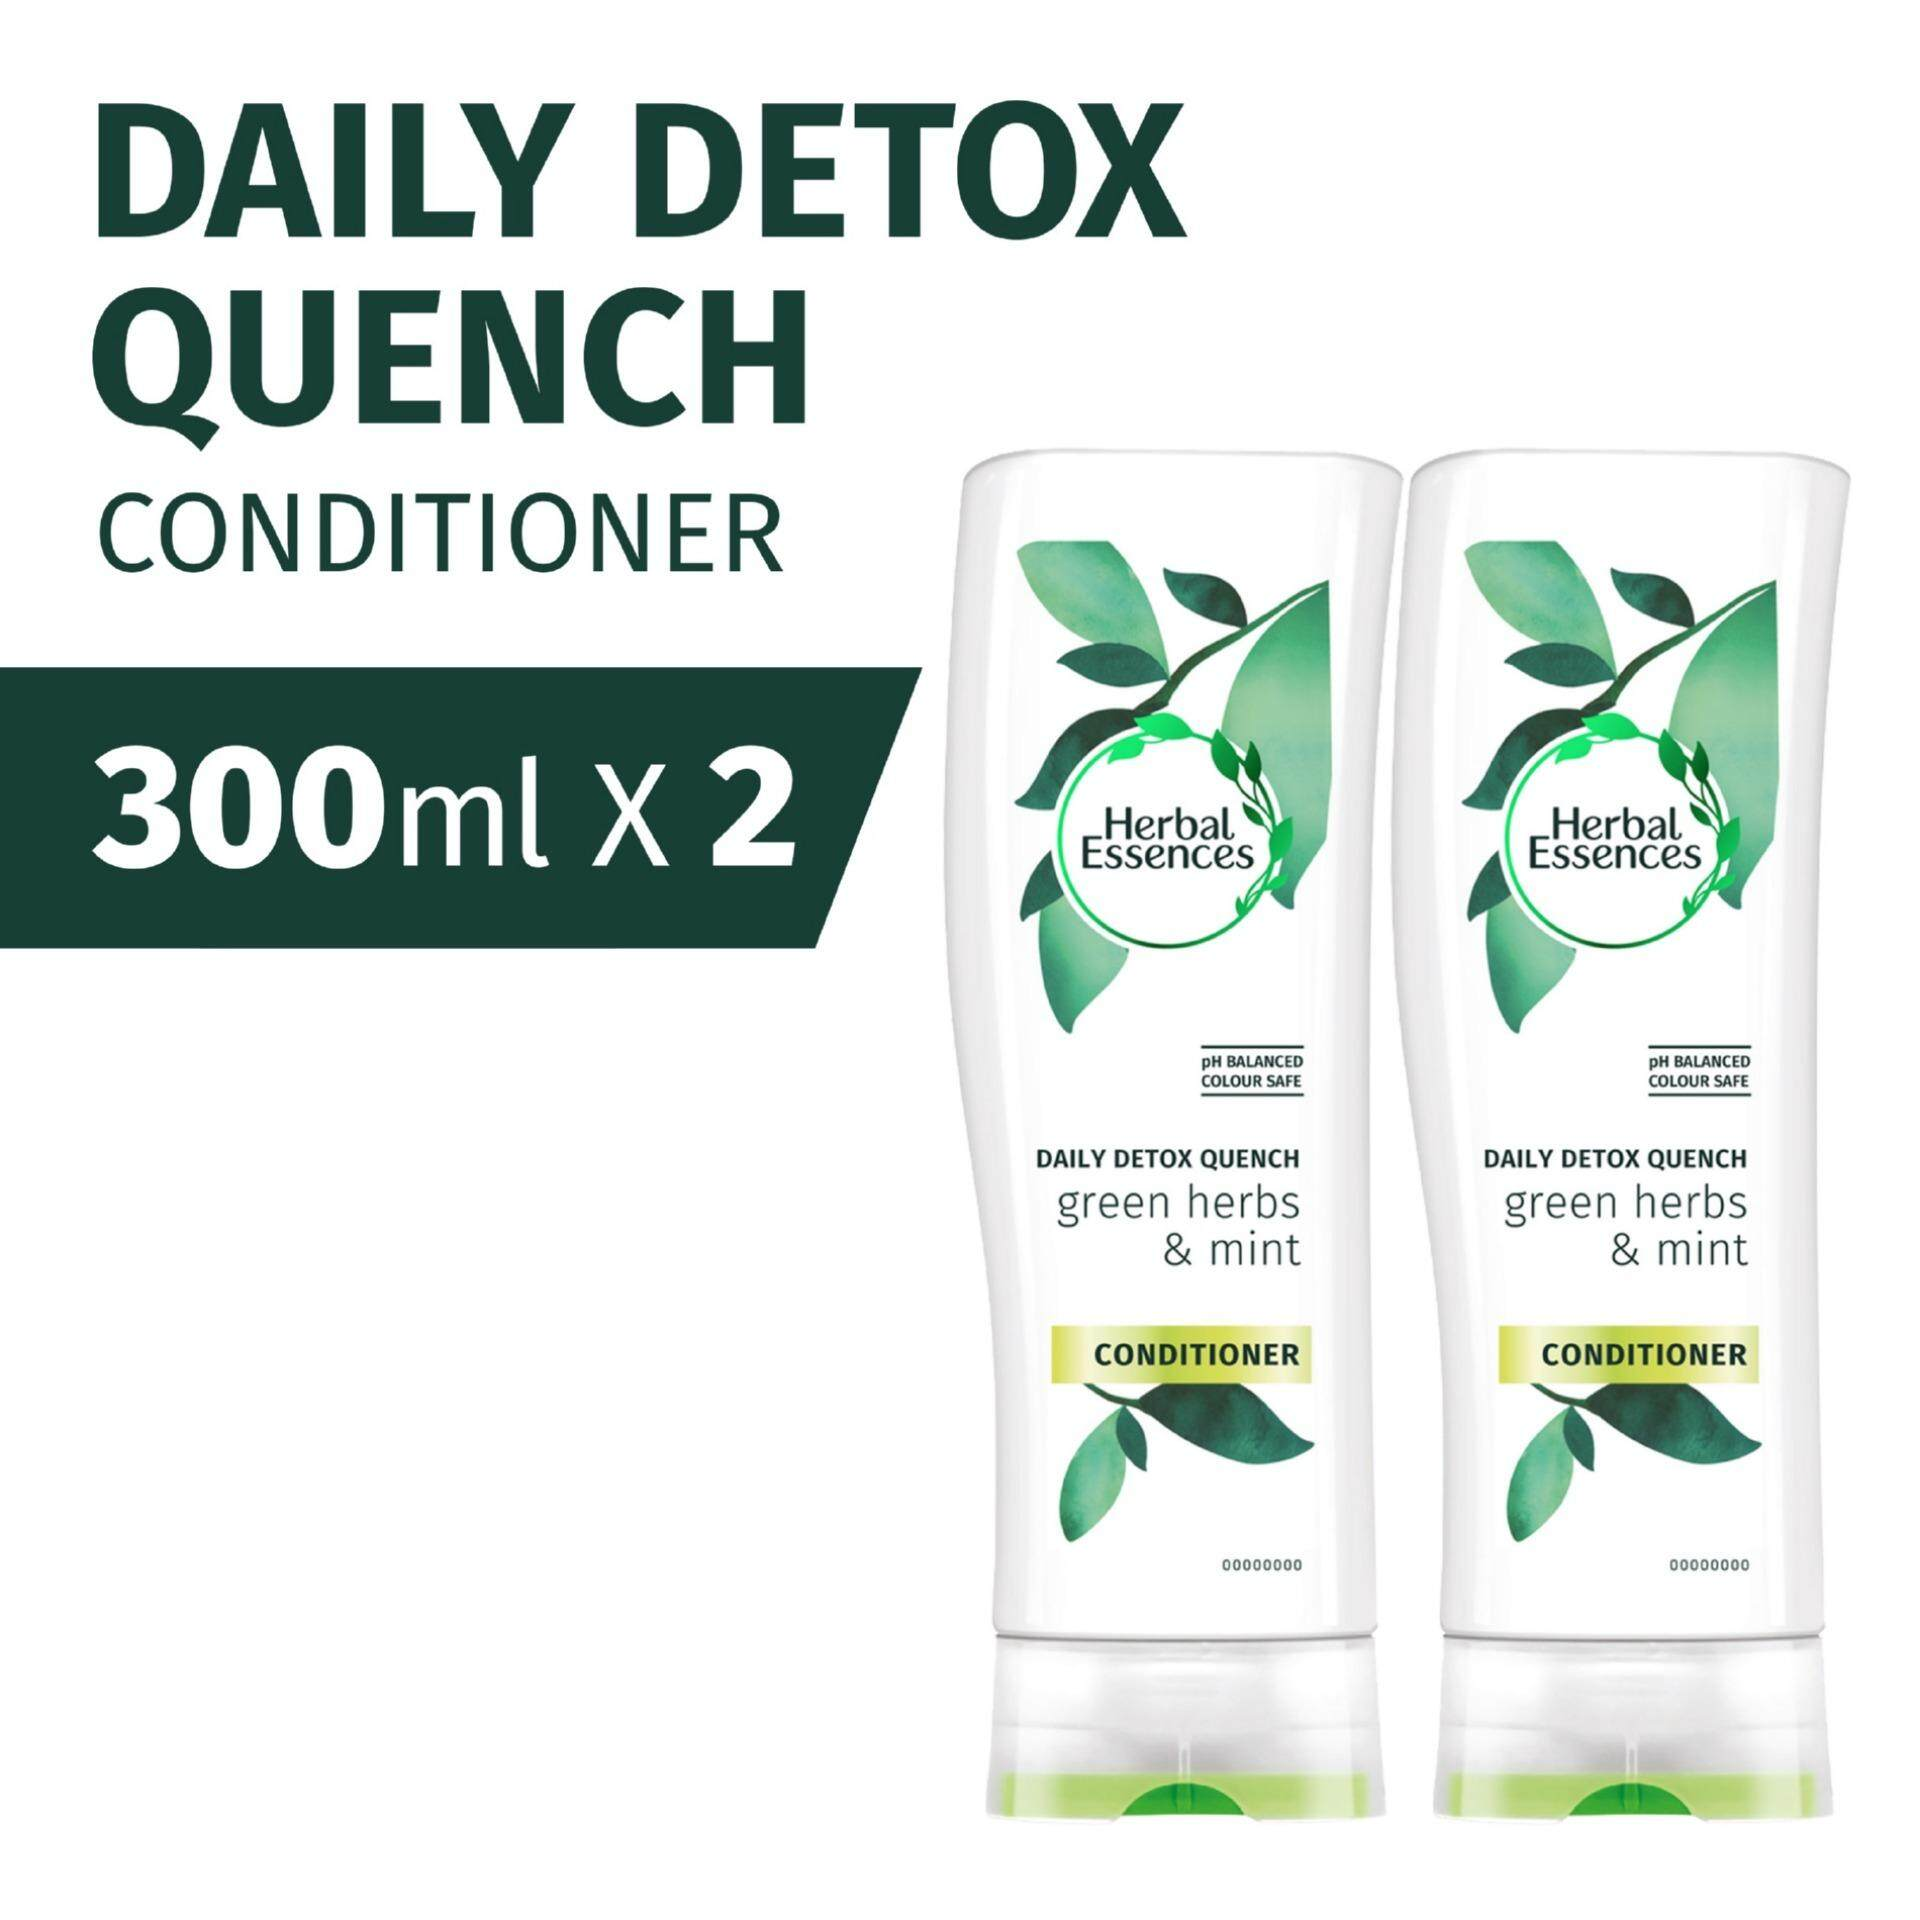 Herbal Essences Daily Detox Quench Conditioner 300ml [bundle Of 2] By P&g Official Store.